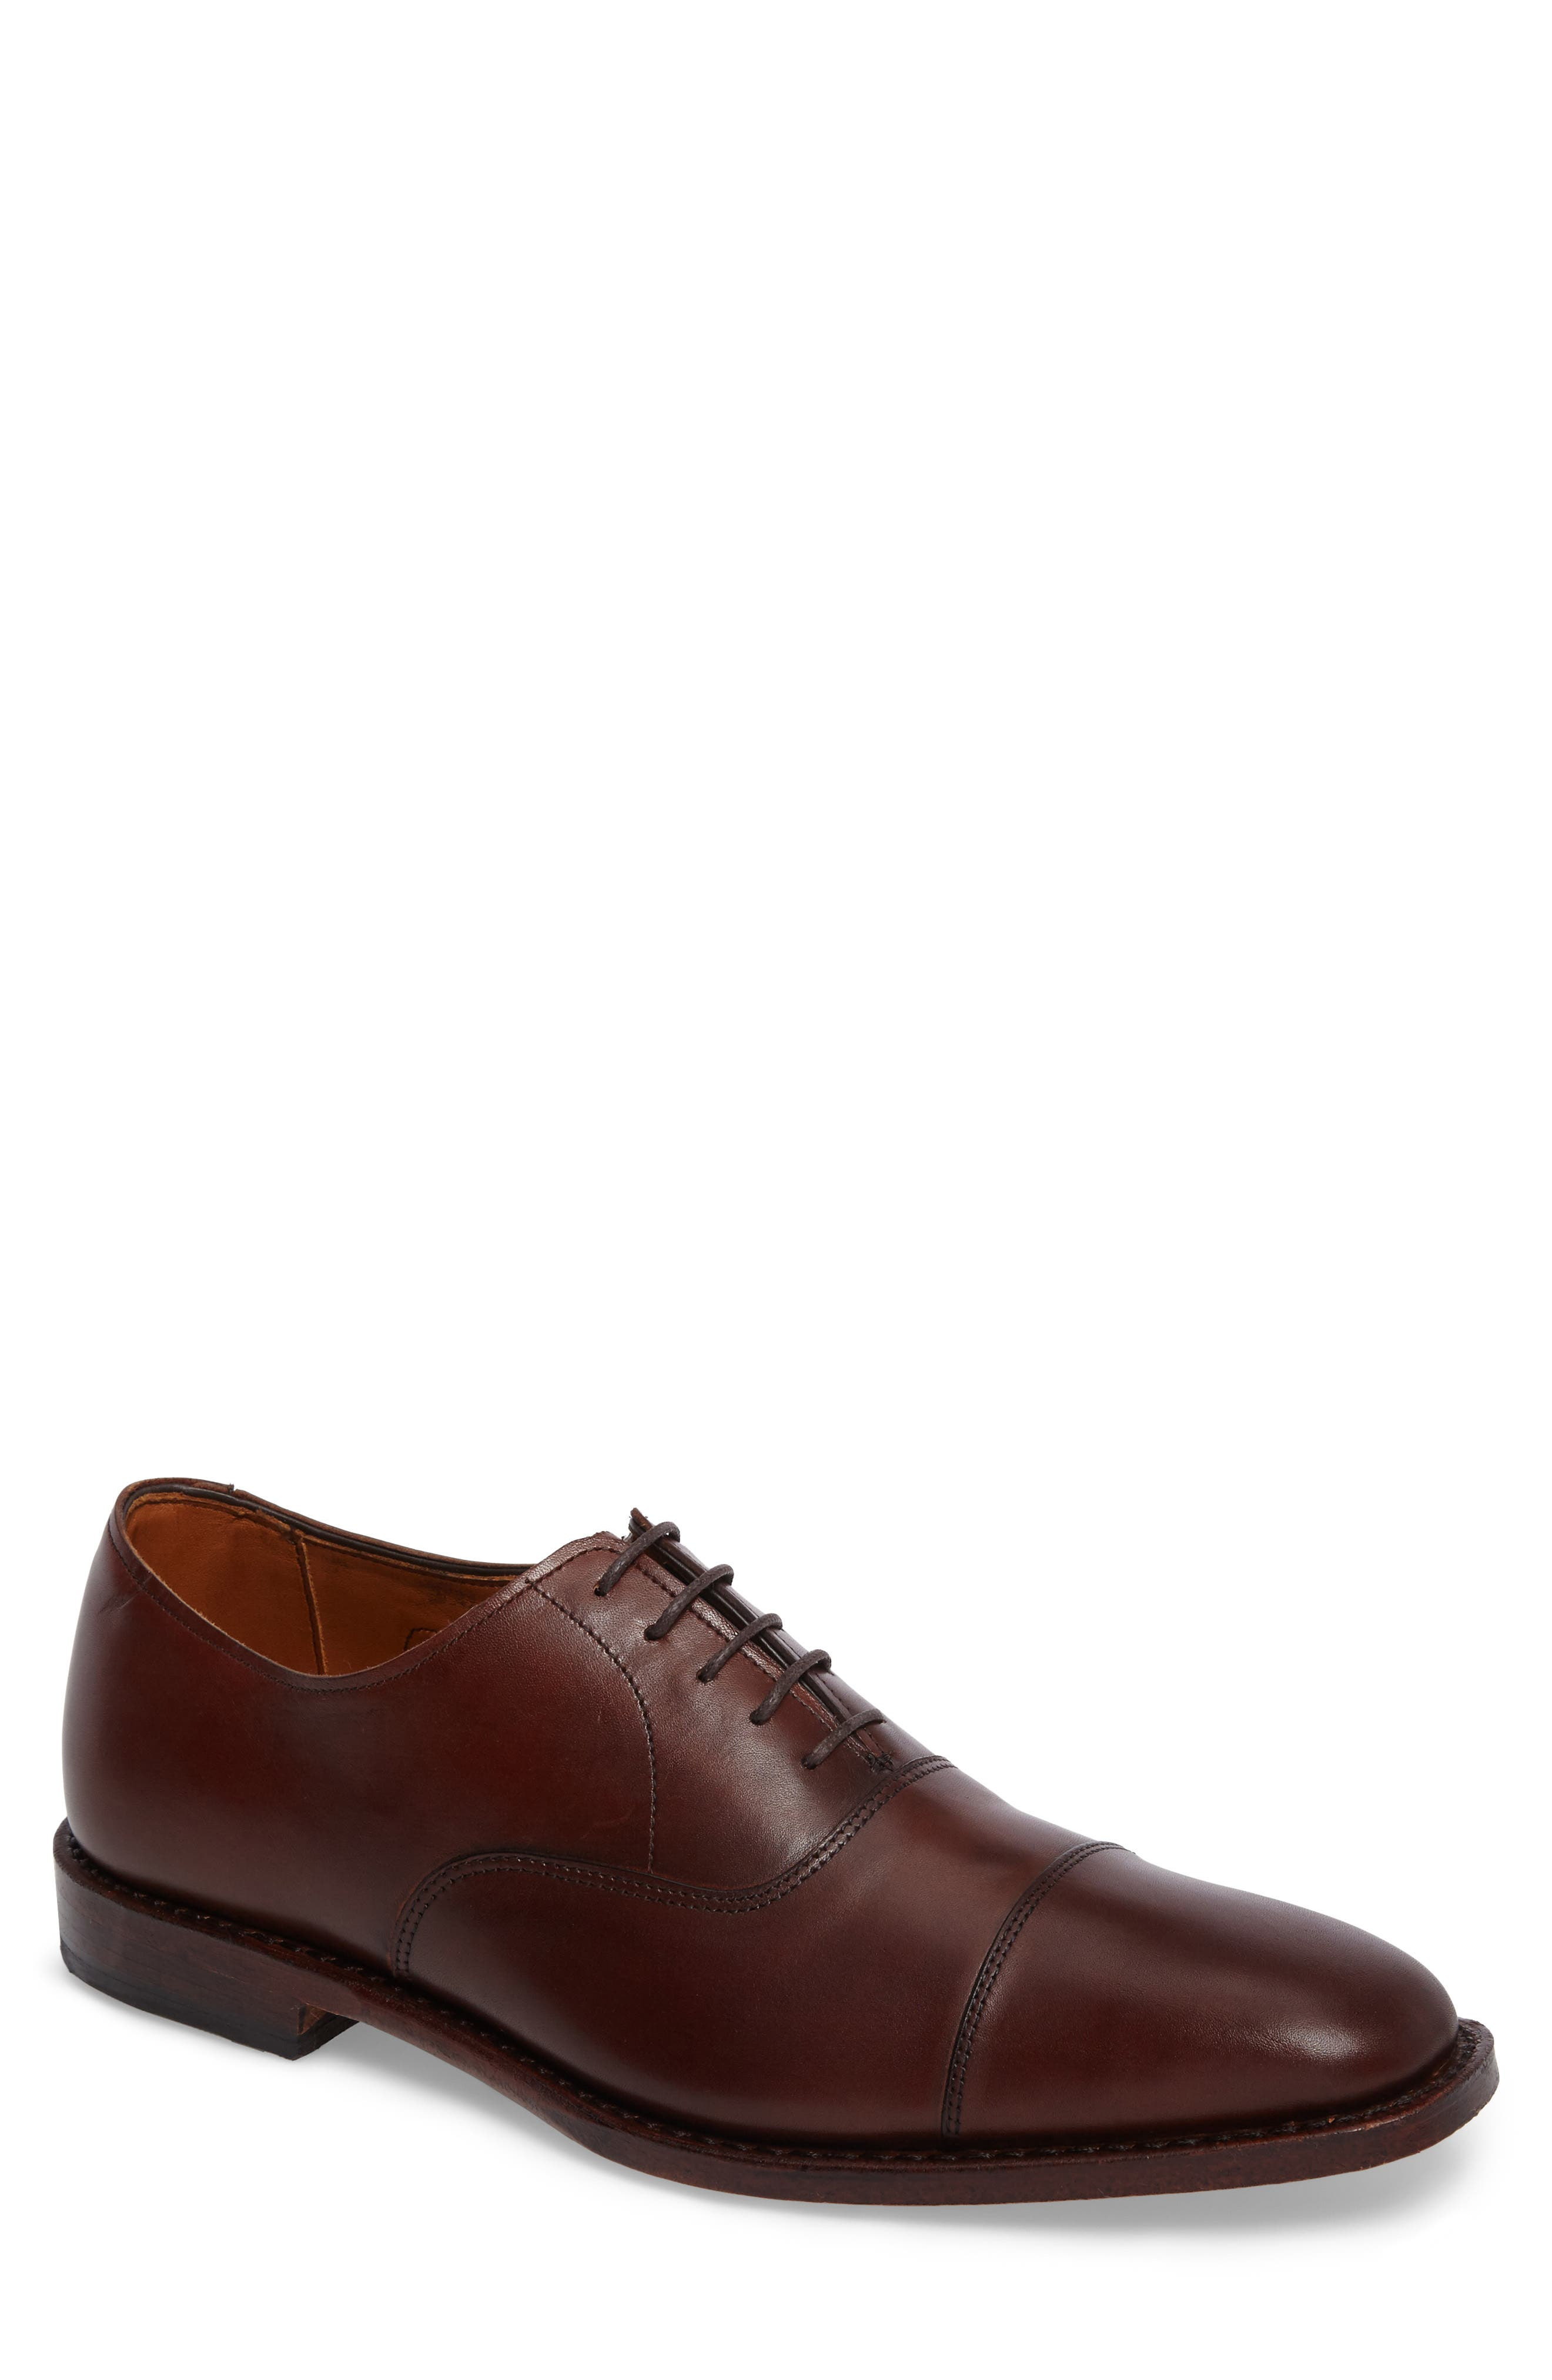 'Exchange Place' Cap Toe Oxford,                         Main,                         color, Dark Chili Leather